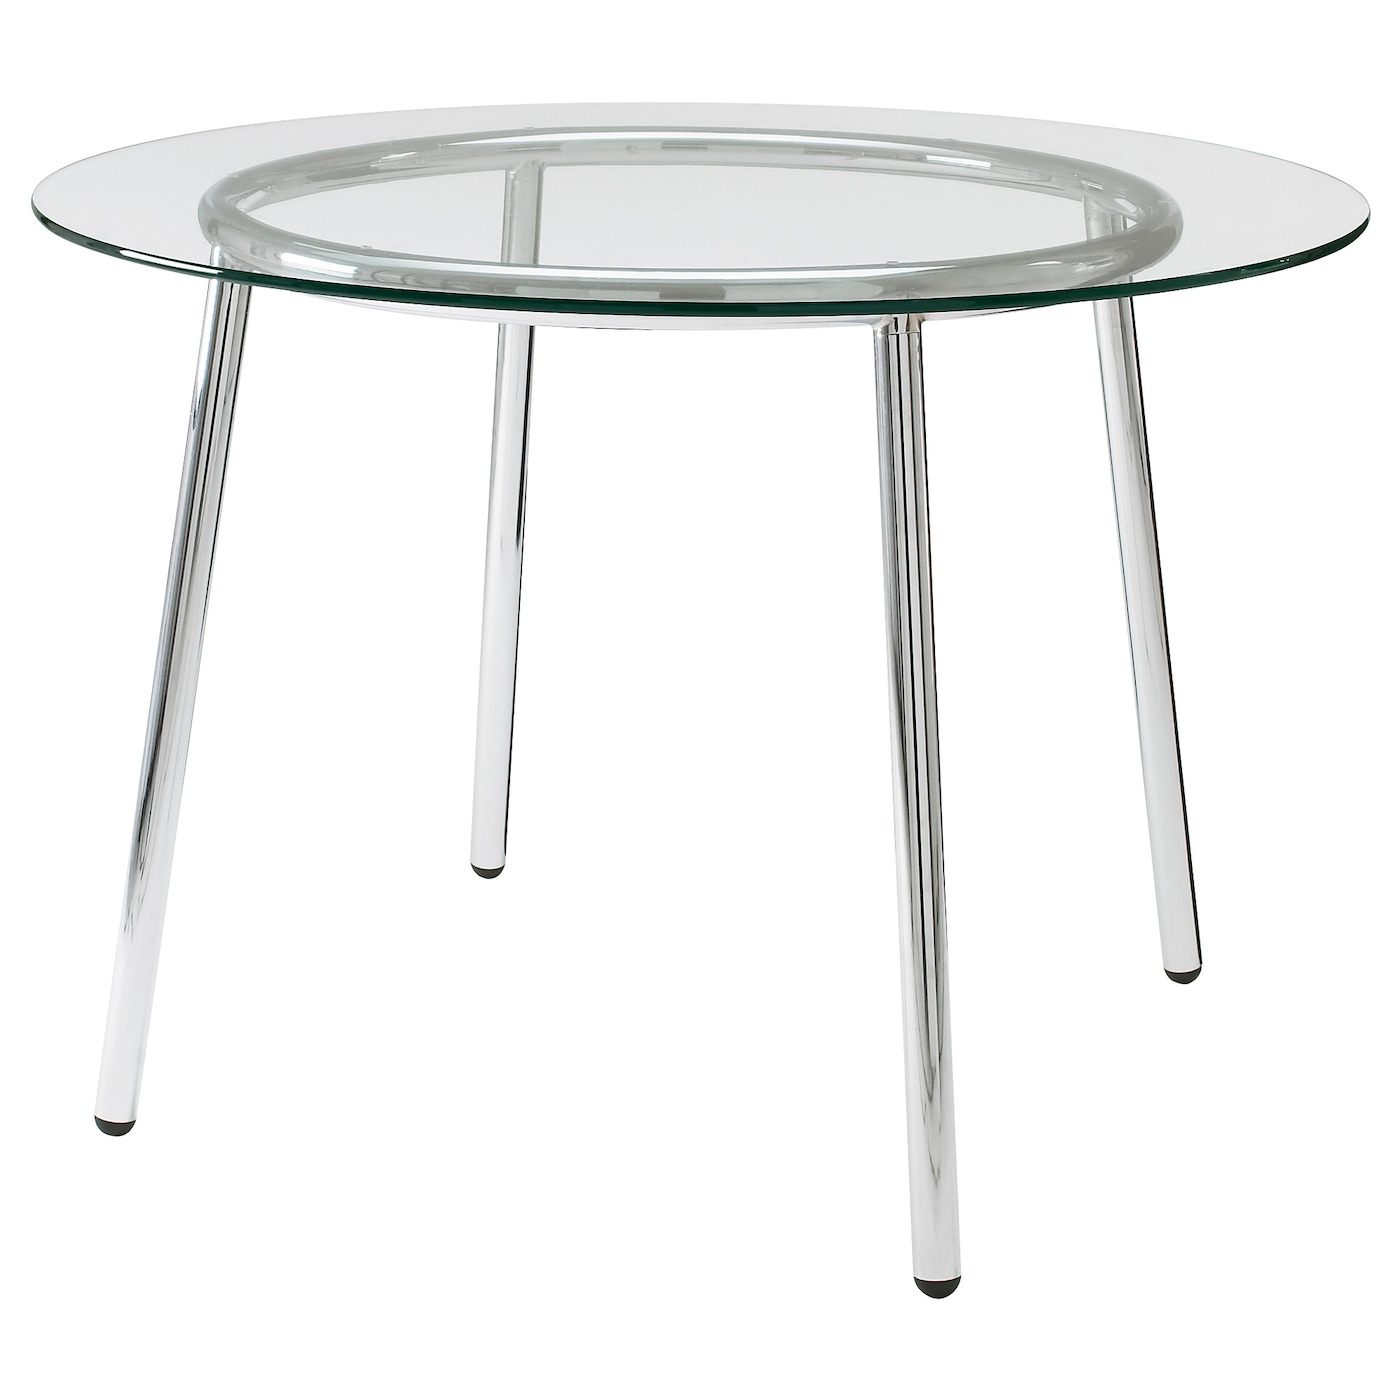 salmi table glass chrome plated 105 cm ikea